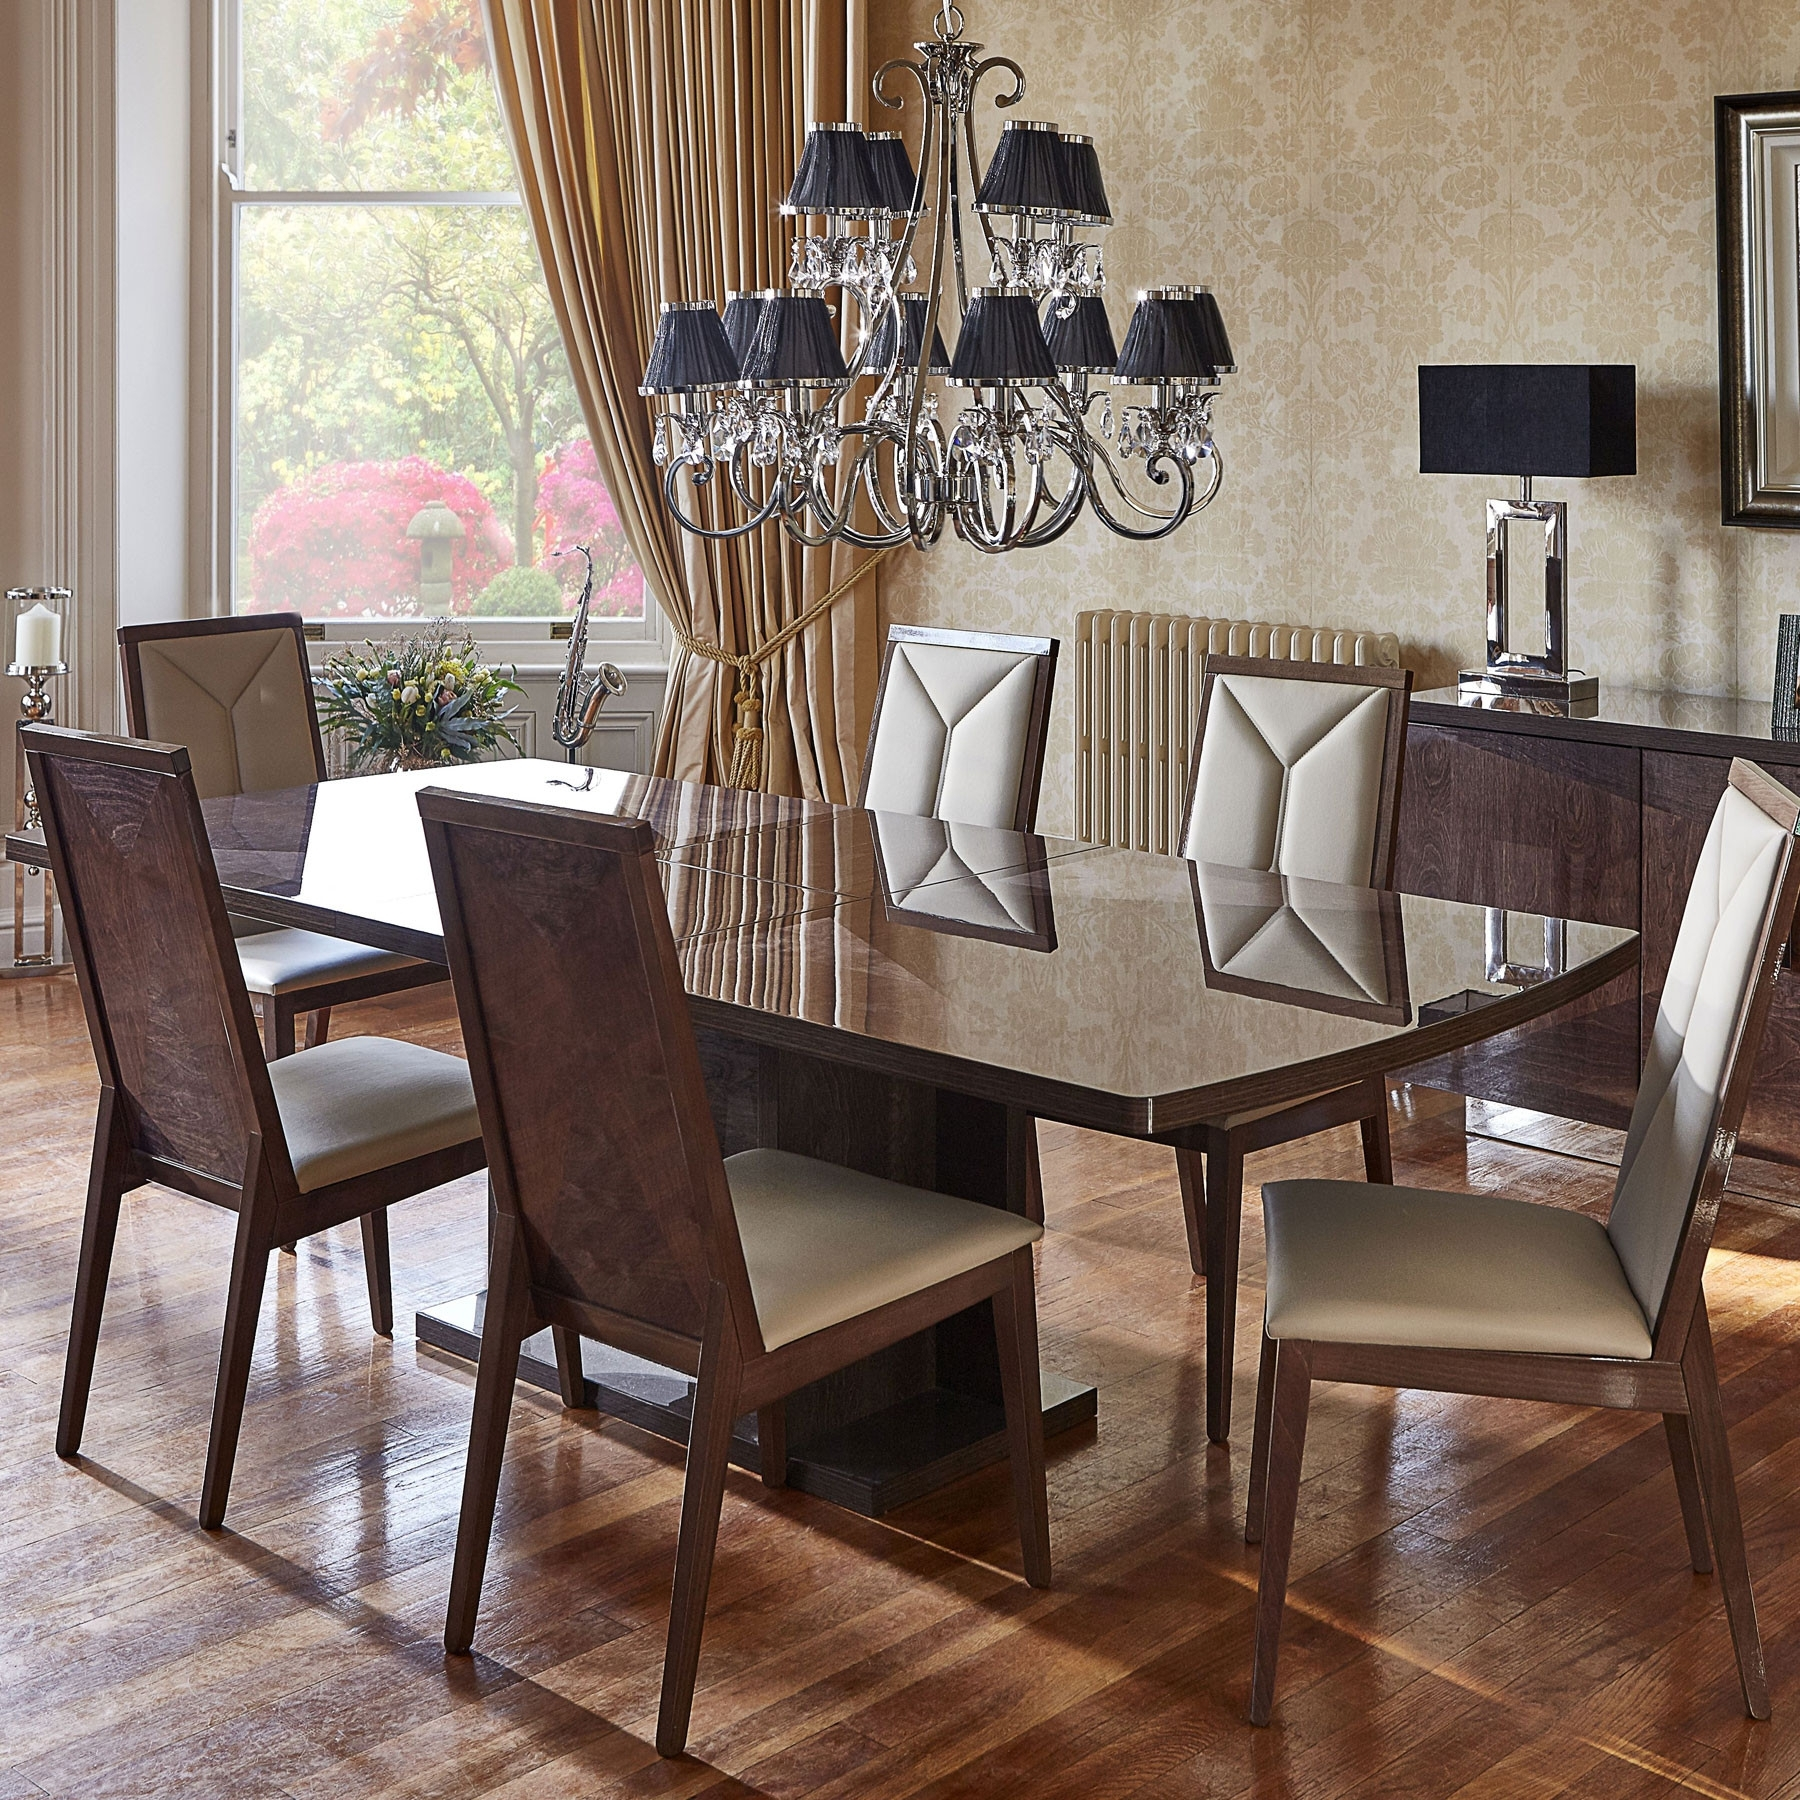 High Gloss Dining Room Furniture With Regard To Recent Vogue High Gloss Extending Dining Table & 6 Chairs (View 7 of 25)